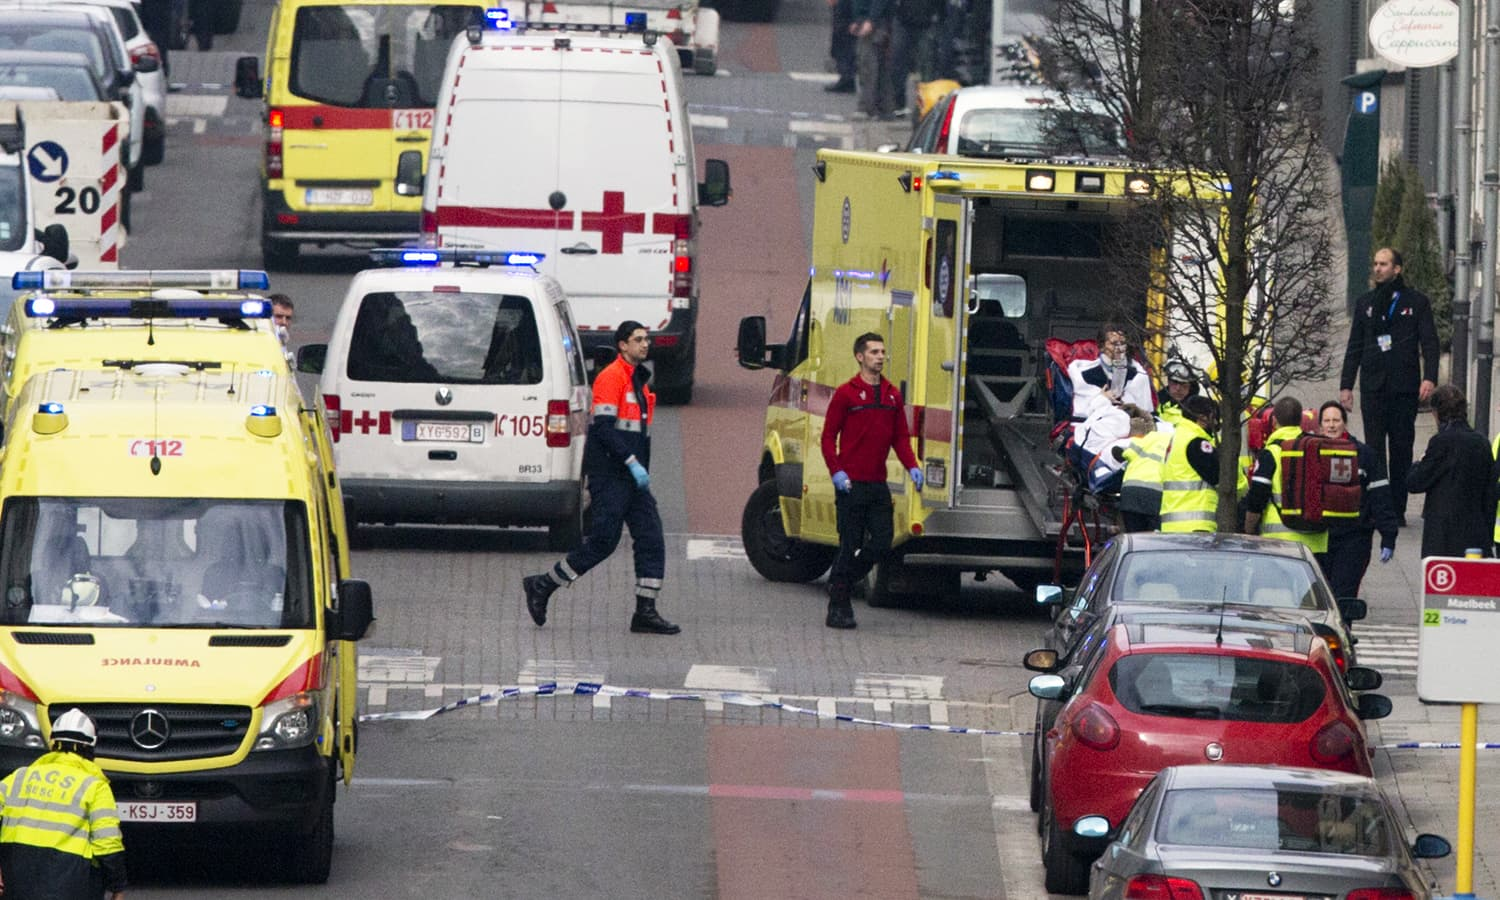 At least 34 dead as explosions rock Brussels airport, subway